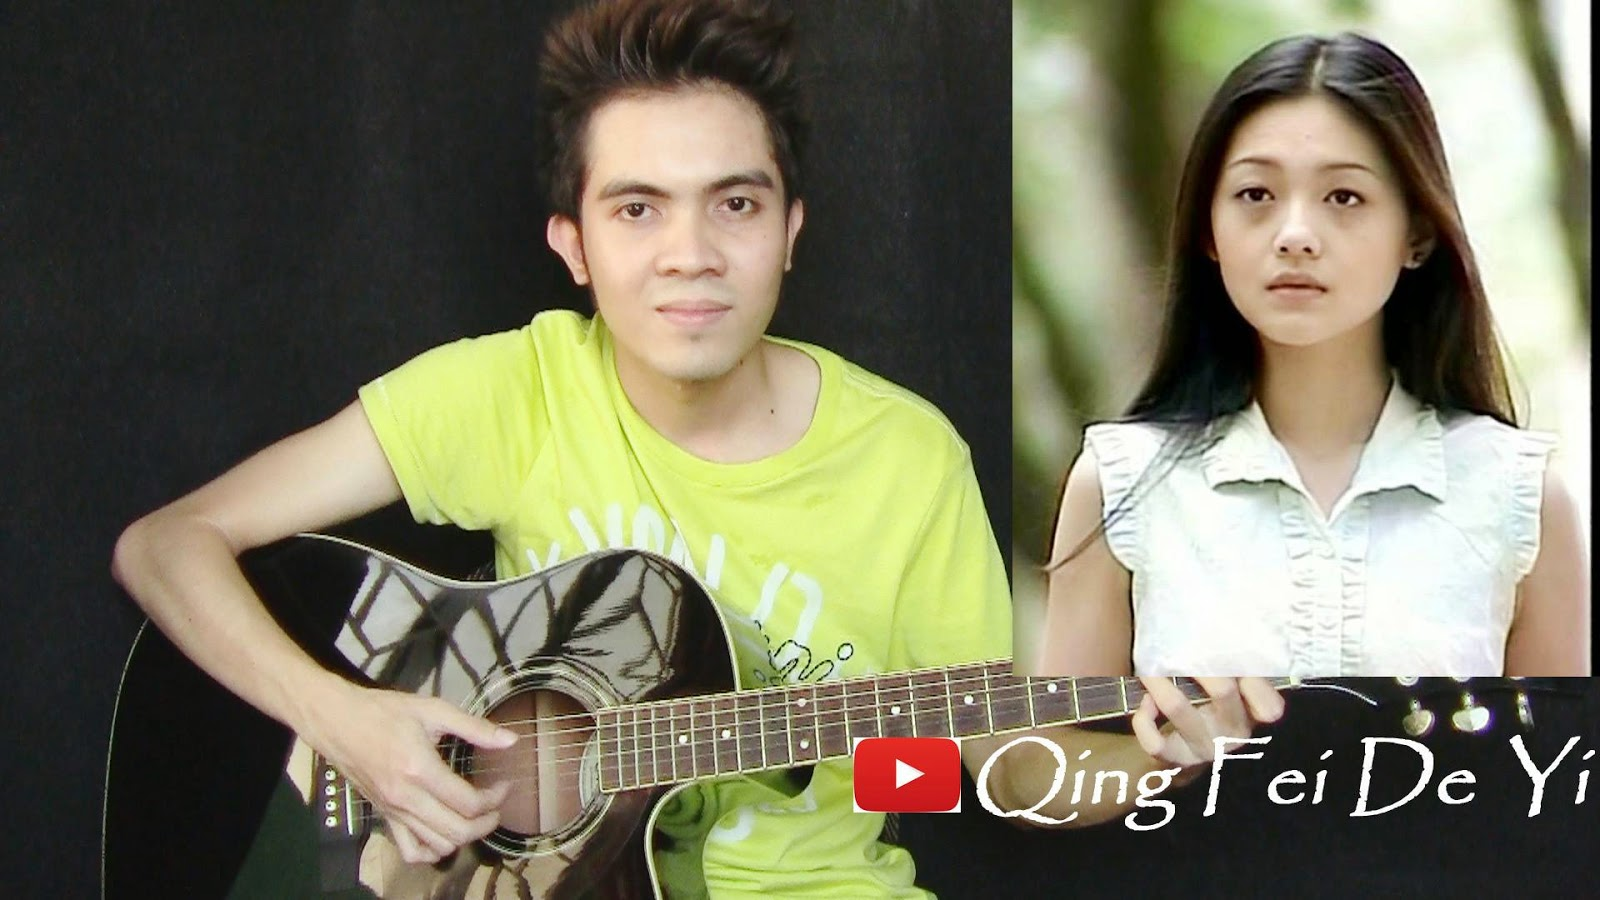 Nothing But The Strings: Meteor Garden OST - Qing Fei De Yi - Harlem Yu (fingerstyle guitar cover)